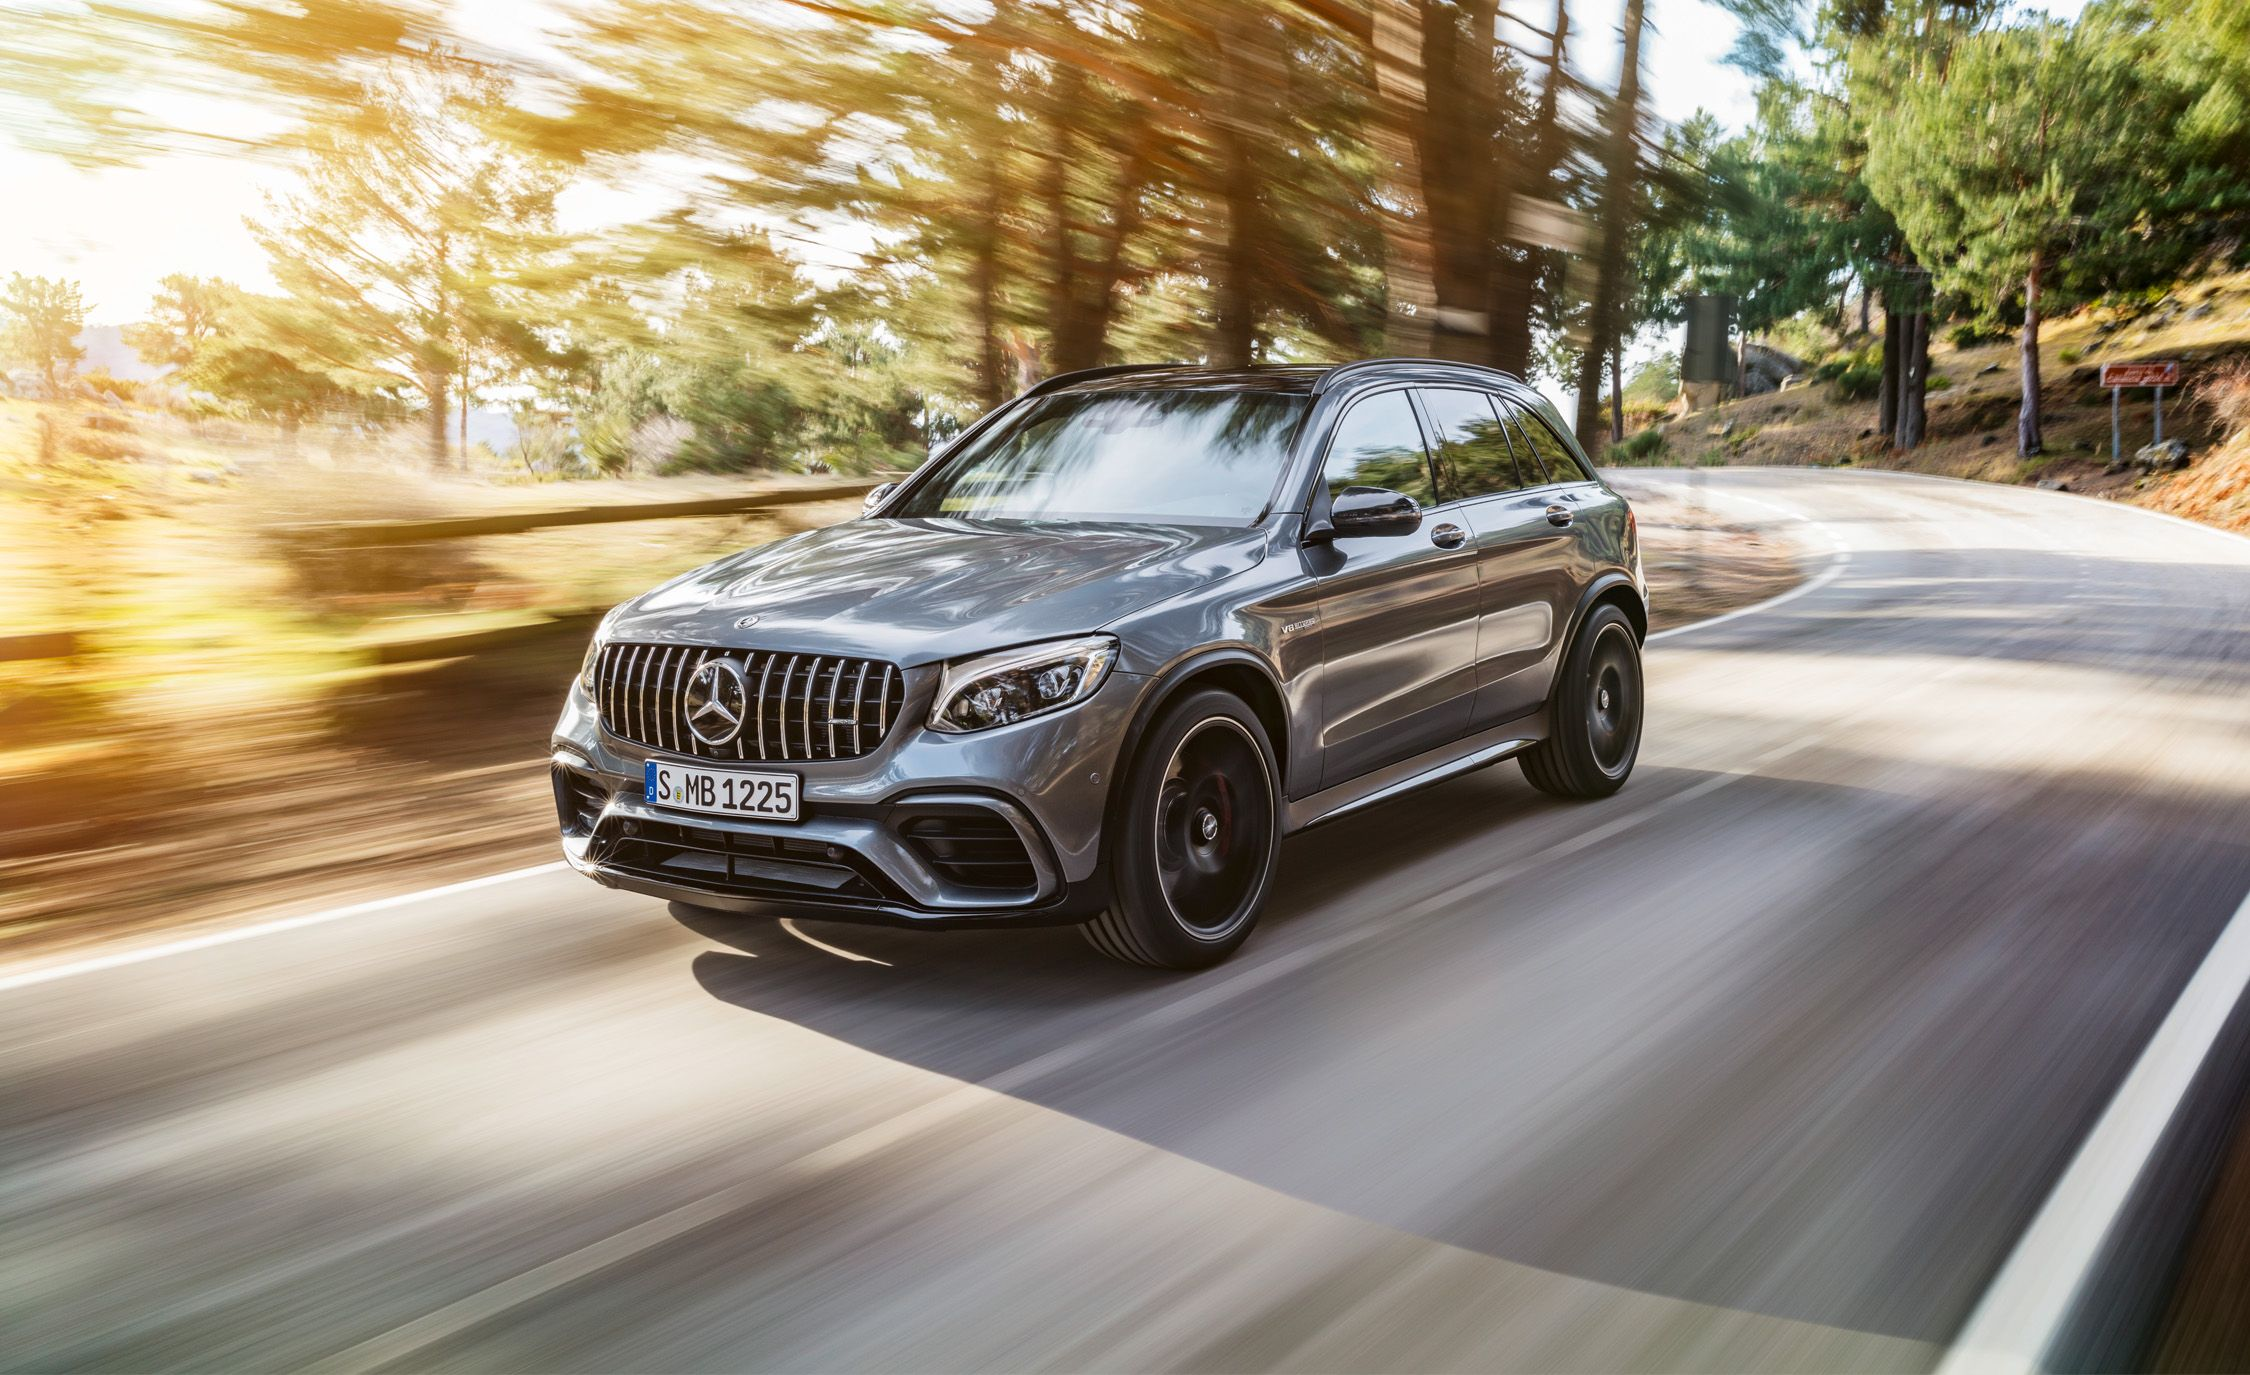 2018 Mercedes-AMG GLC63 4MATIC: A Small CUV with 469 HP of V-8 Fury